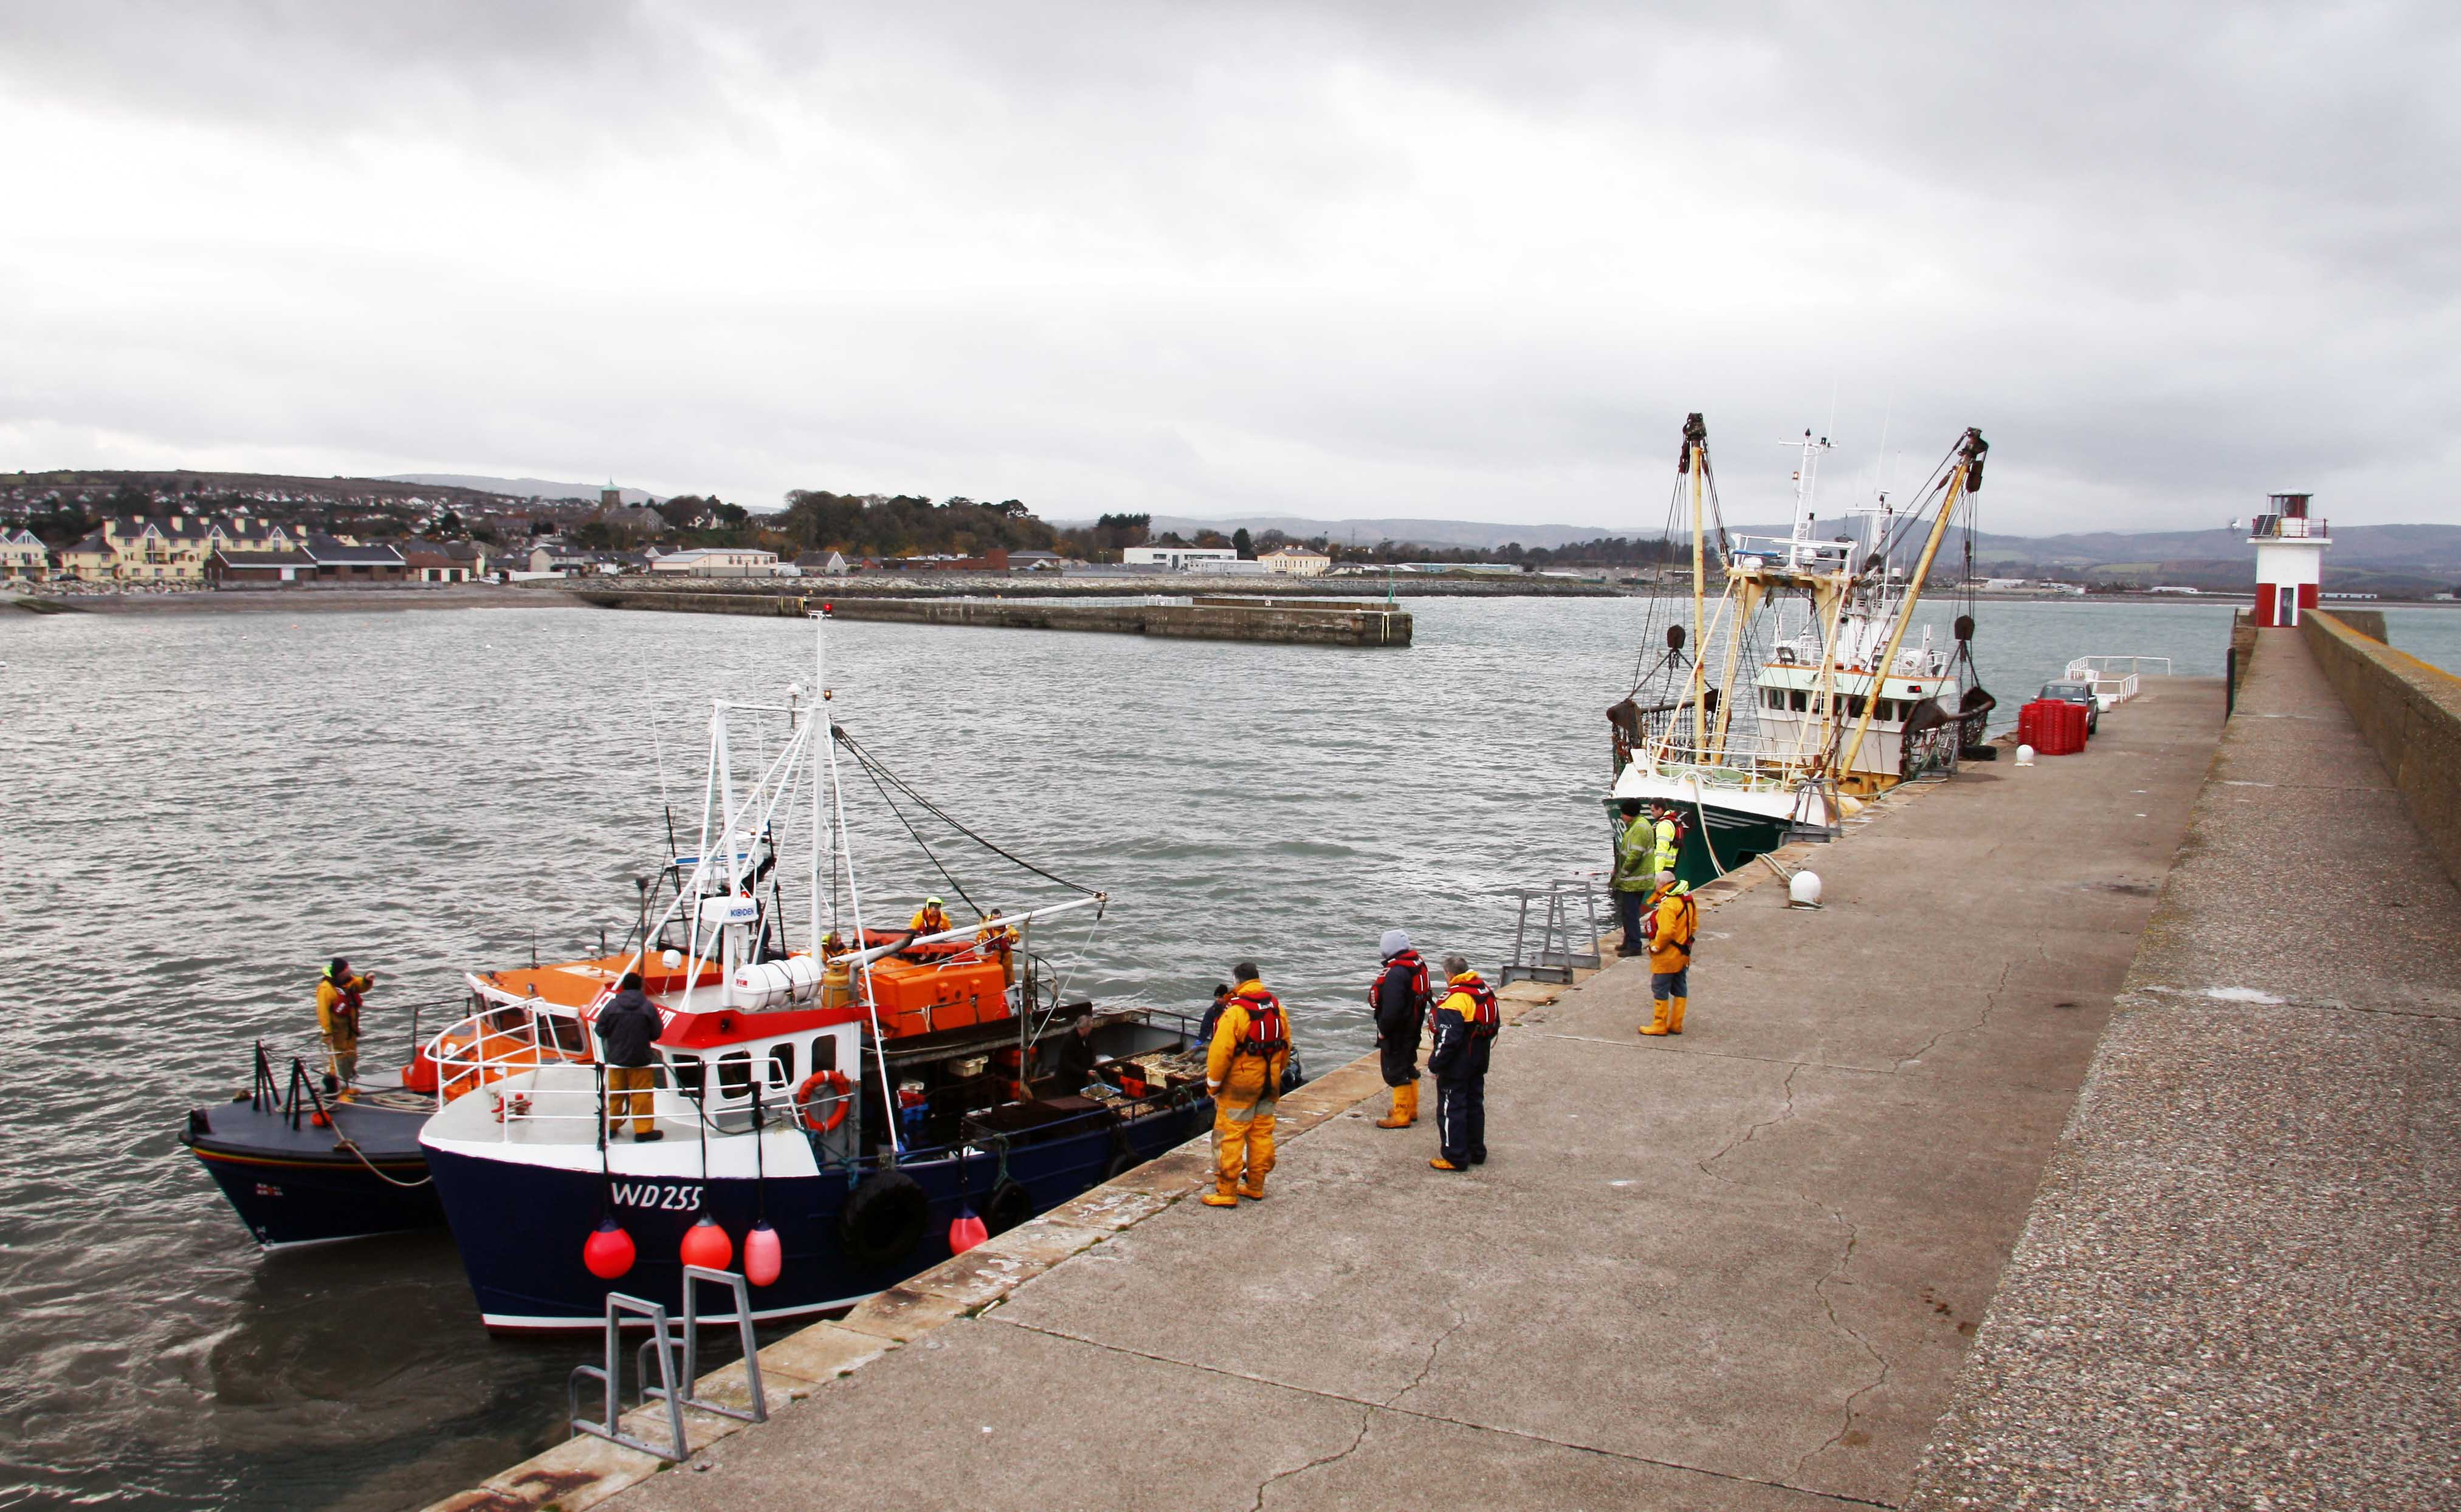 wicklow rnli